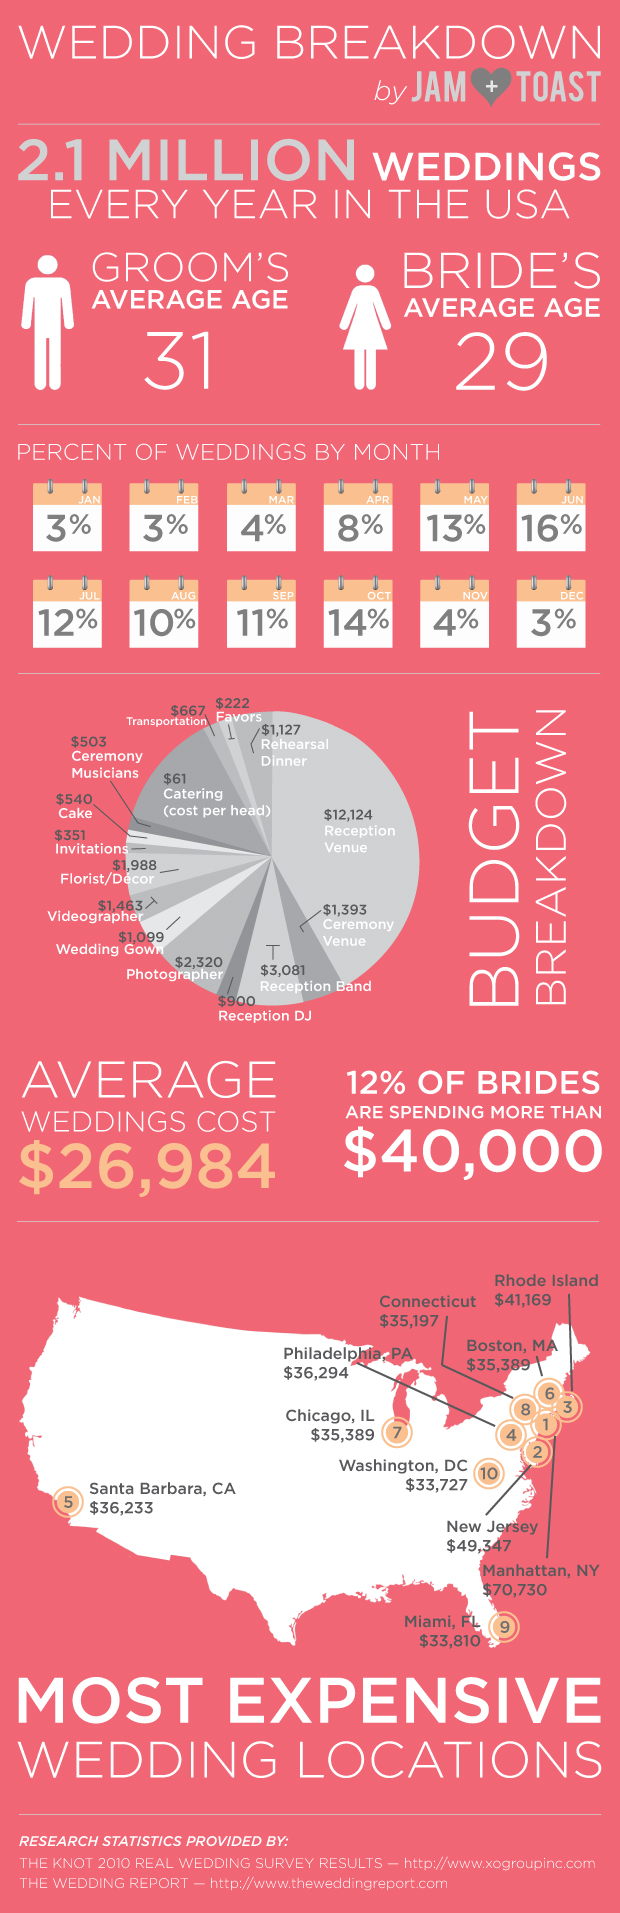 There are 2.1 MILLION WEDDINGS per year in the USA with an average ...